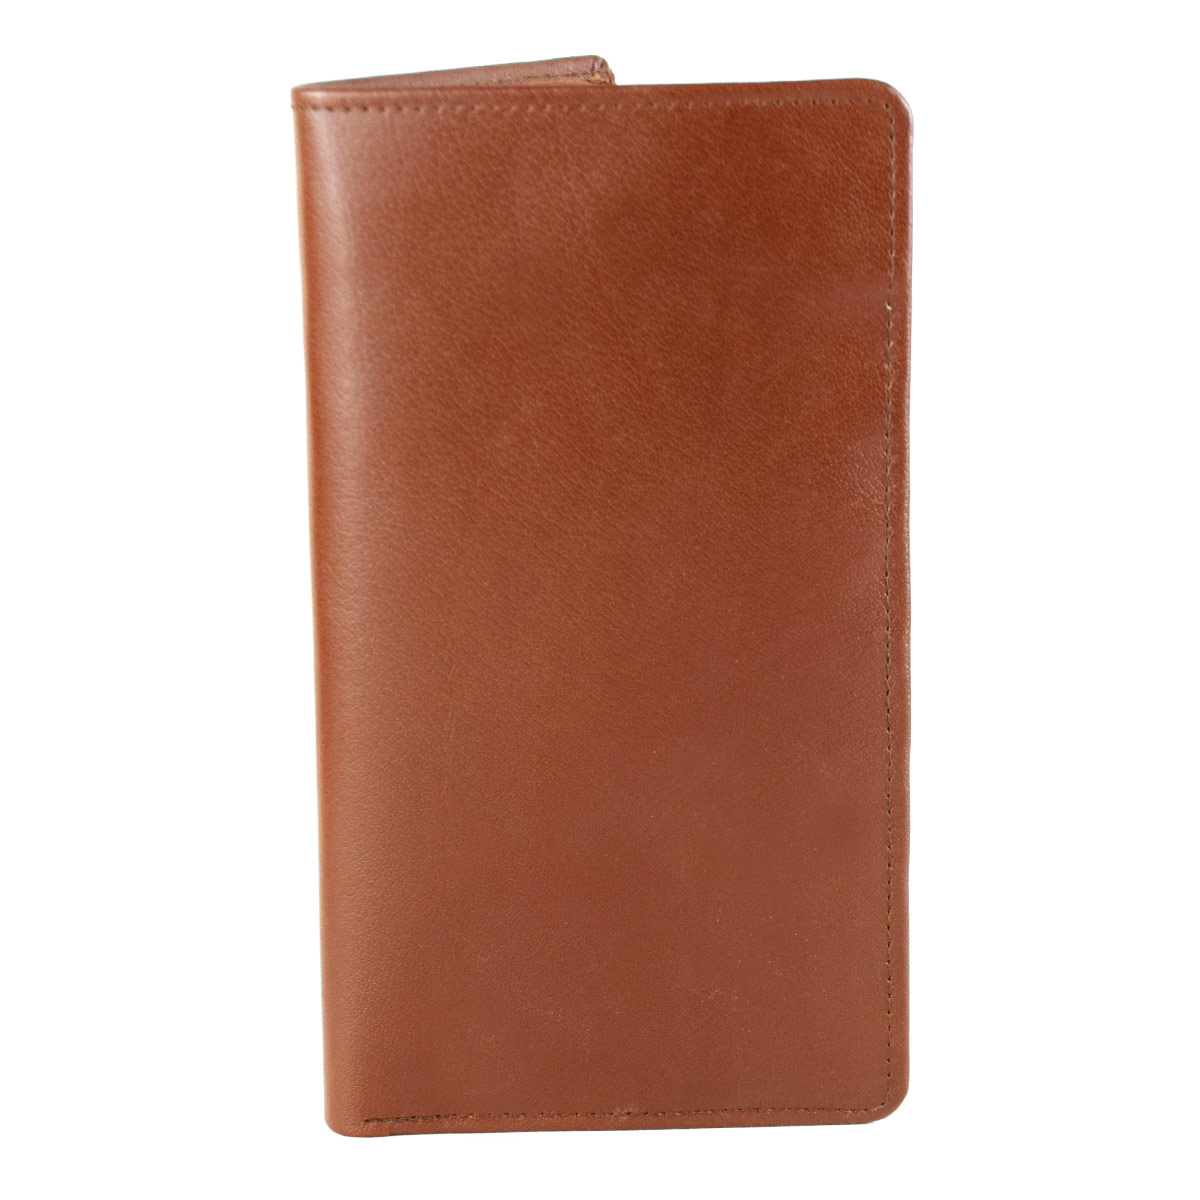 BROWN LONG WALLET WITH SEVERAL POCKETS